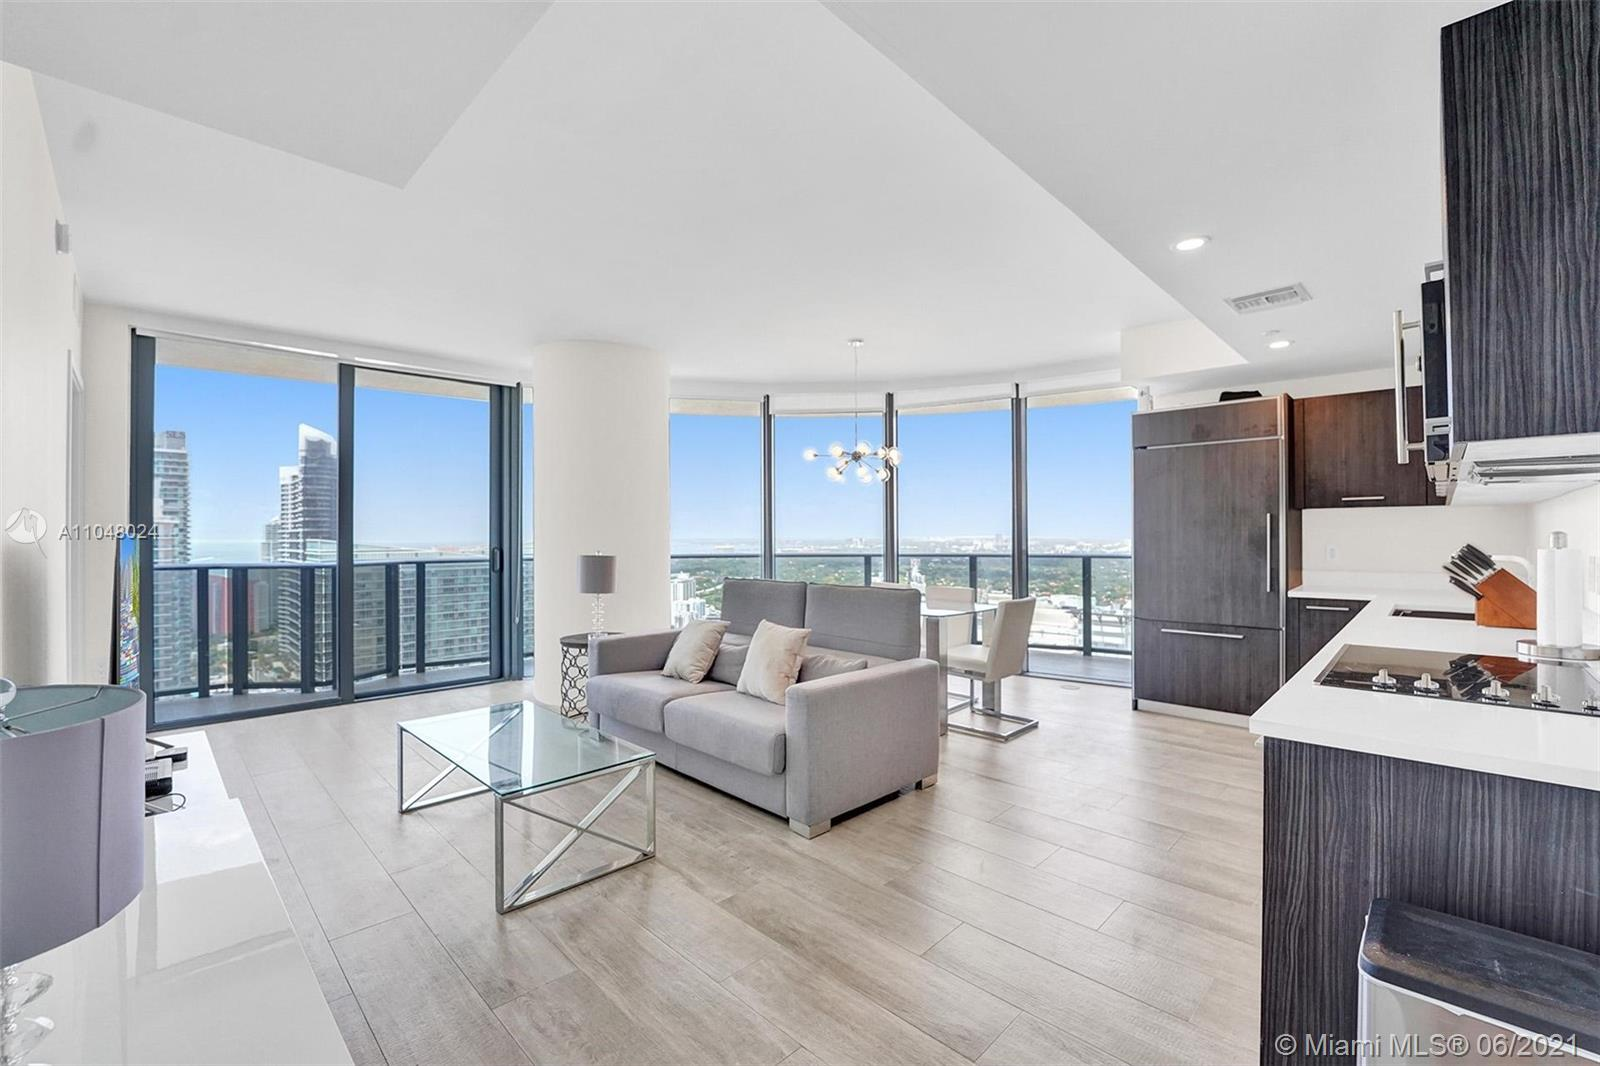 MOVE IN READY FURNISHED 2 bed/ 2 bath + Den in the Heart of Brickell. 2 Covered Parking Spaces (Owner Paid $20,000 for the Extra Parking) + Storage Unit. Beautiful Modern Kitchen and Bathrooms. Floor to Ceiling Windows with Wrap Around Open Balcony. Spectacular Views of the City Skyline and the Bay. 5 Star Amenities, Roof Top Pool, Concierge, Equinox Gym, Soul Cycle Studio, Valet, Kids Room, Club Room, Sustainable Community Garden and Much, Much More. Walking Distance to Everything Brickell has to Offer: City Center, Bars, Restaurants, Coffee Shops, etc.